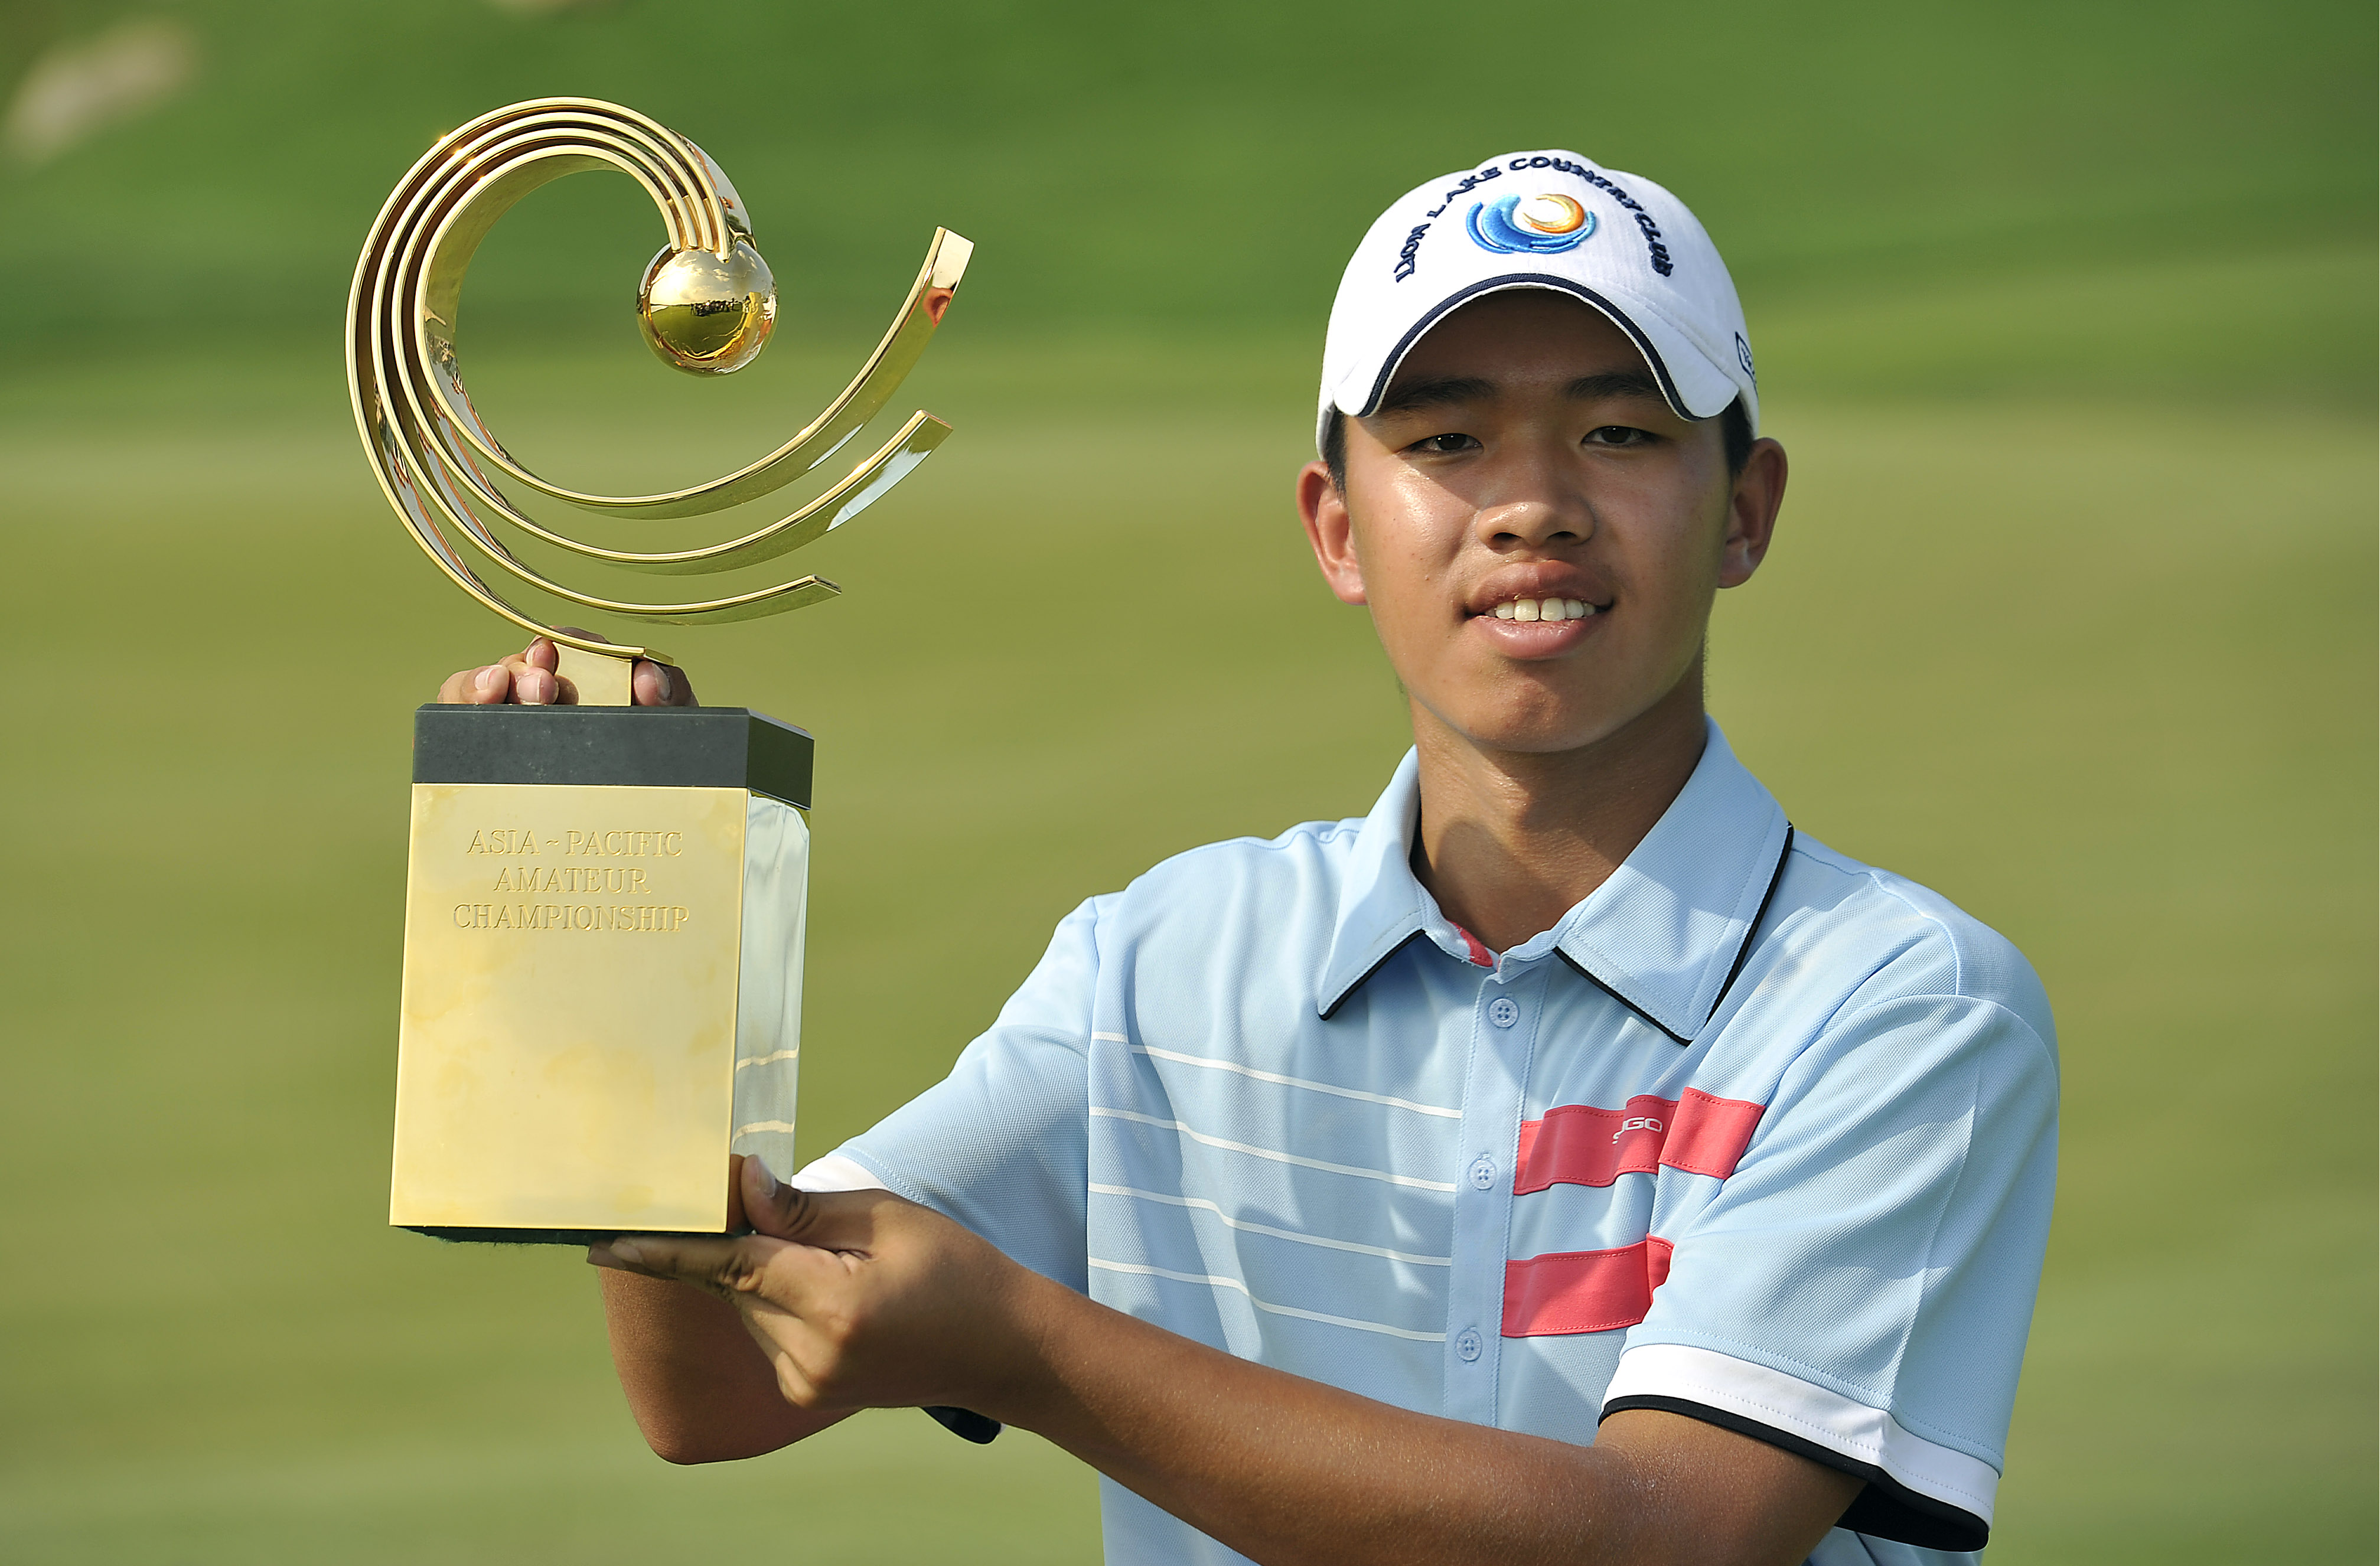 CHON BURI-THAILAND - Guan Tianlang of China pictured on November 4, 2012, during the final day with the winner's trophy at the 2012 Asia-Pacific Amateur Championship at Amata Spring Country Club, Chon Buri, Thailand. Photo by Paul Lakatos/AAC.